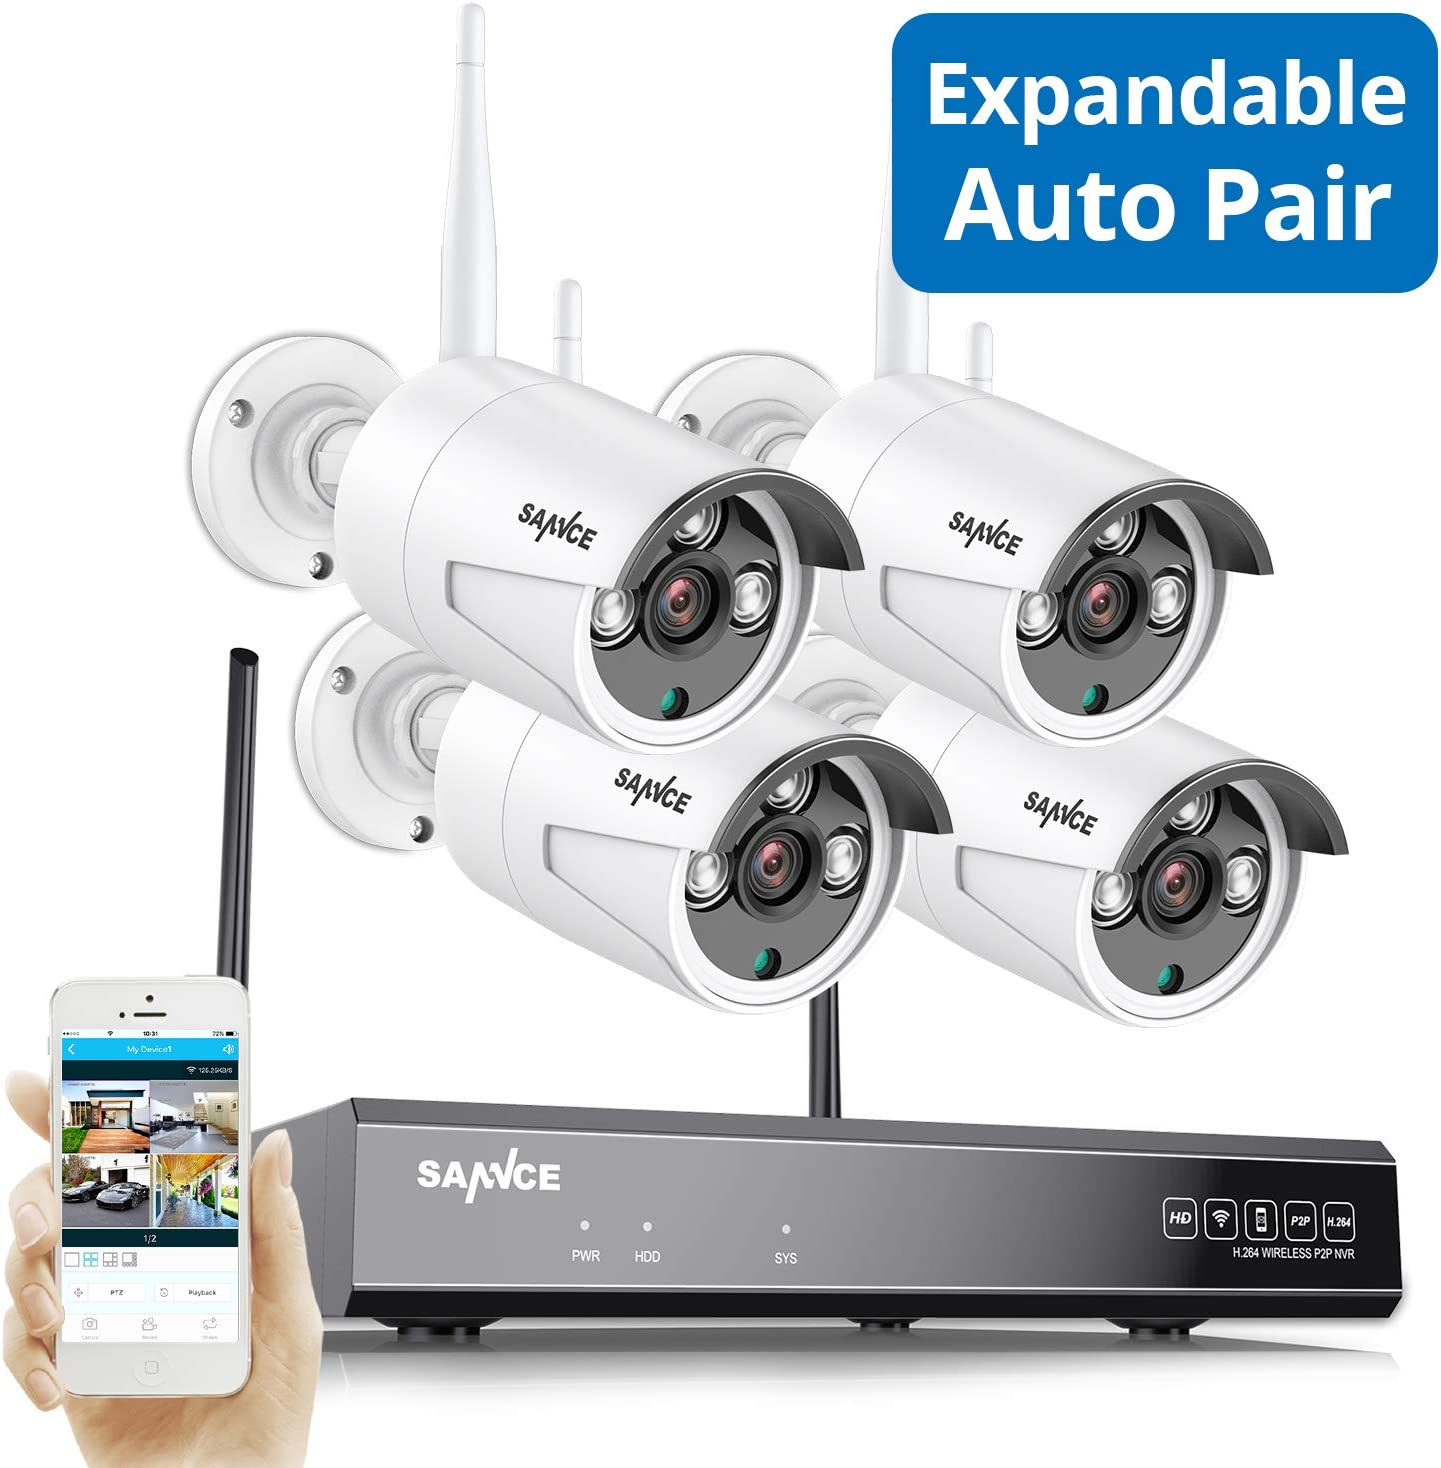 Wireless Security Camera System, SANNCE 8CH 1080P NVR 4Pcs 2MP Outdoor Enhanced Signal WiFi Surveillance Cameras, Weatherproof, Motion Detection with Screenshot, Remote Monitoring,NO Hard Drive